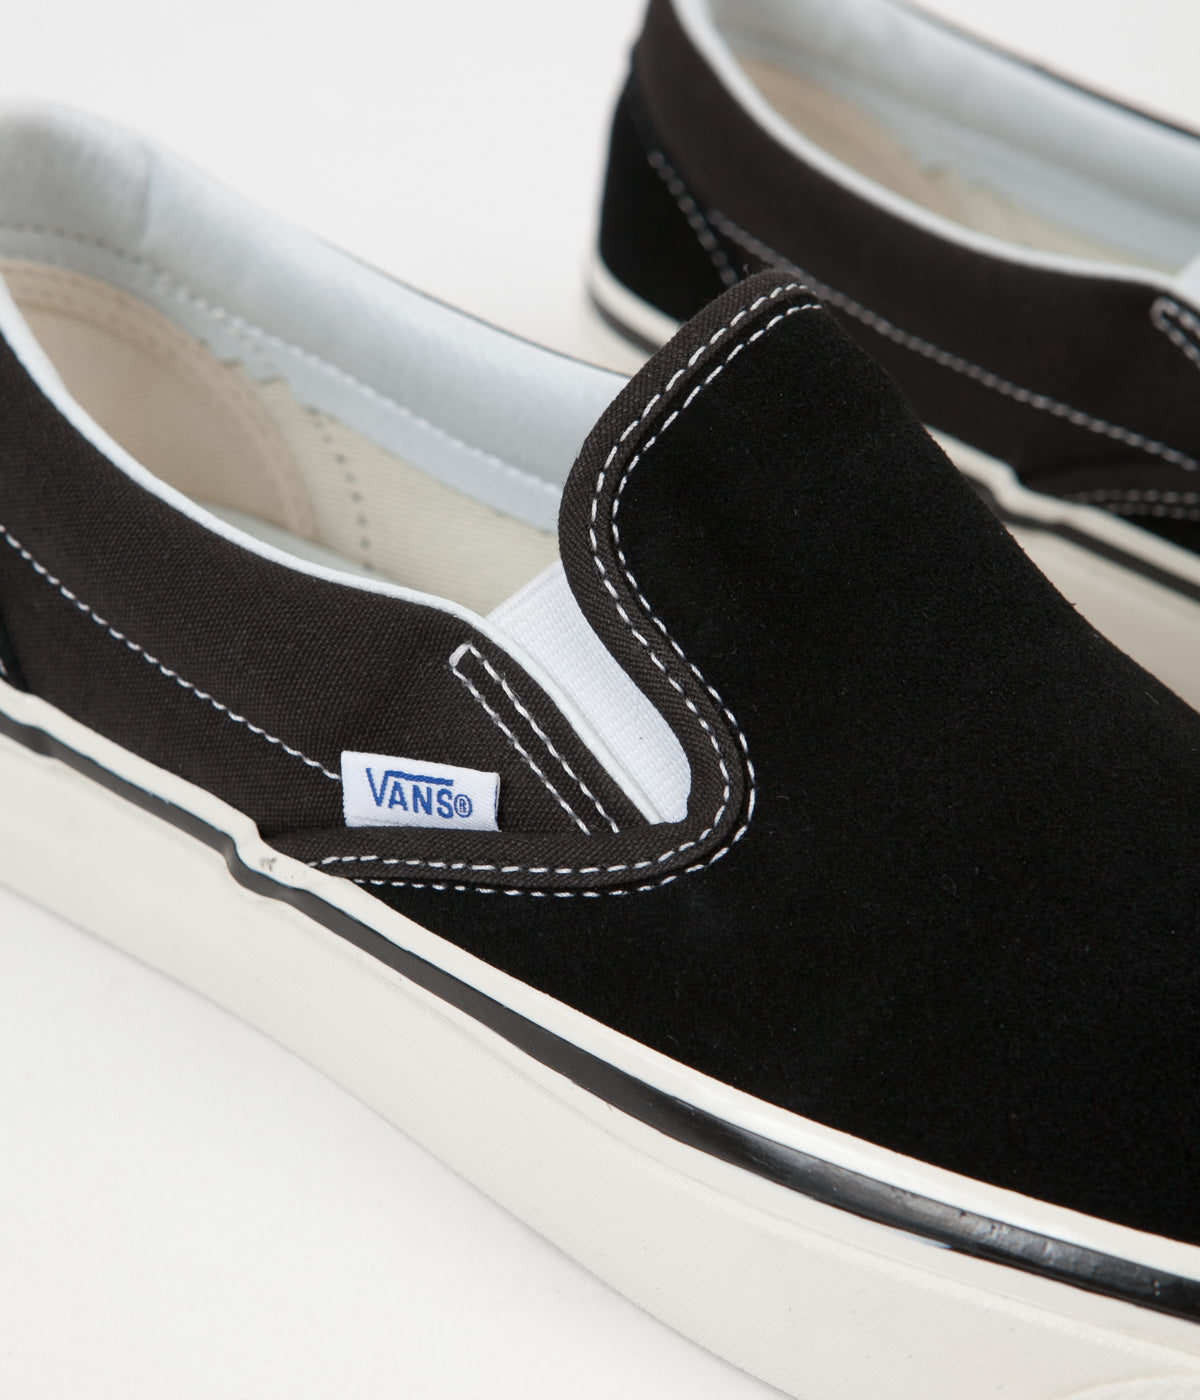 ... Vans Classic Slip On 98 DX Anaheim Factory Suede Shoes - OG Black ... 75622244f